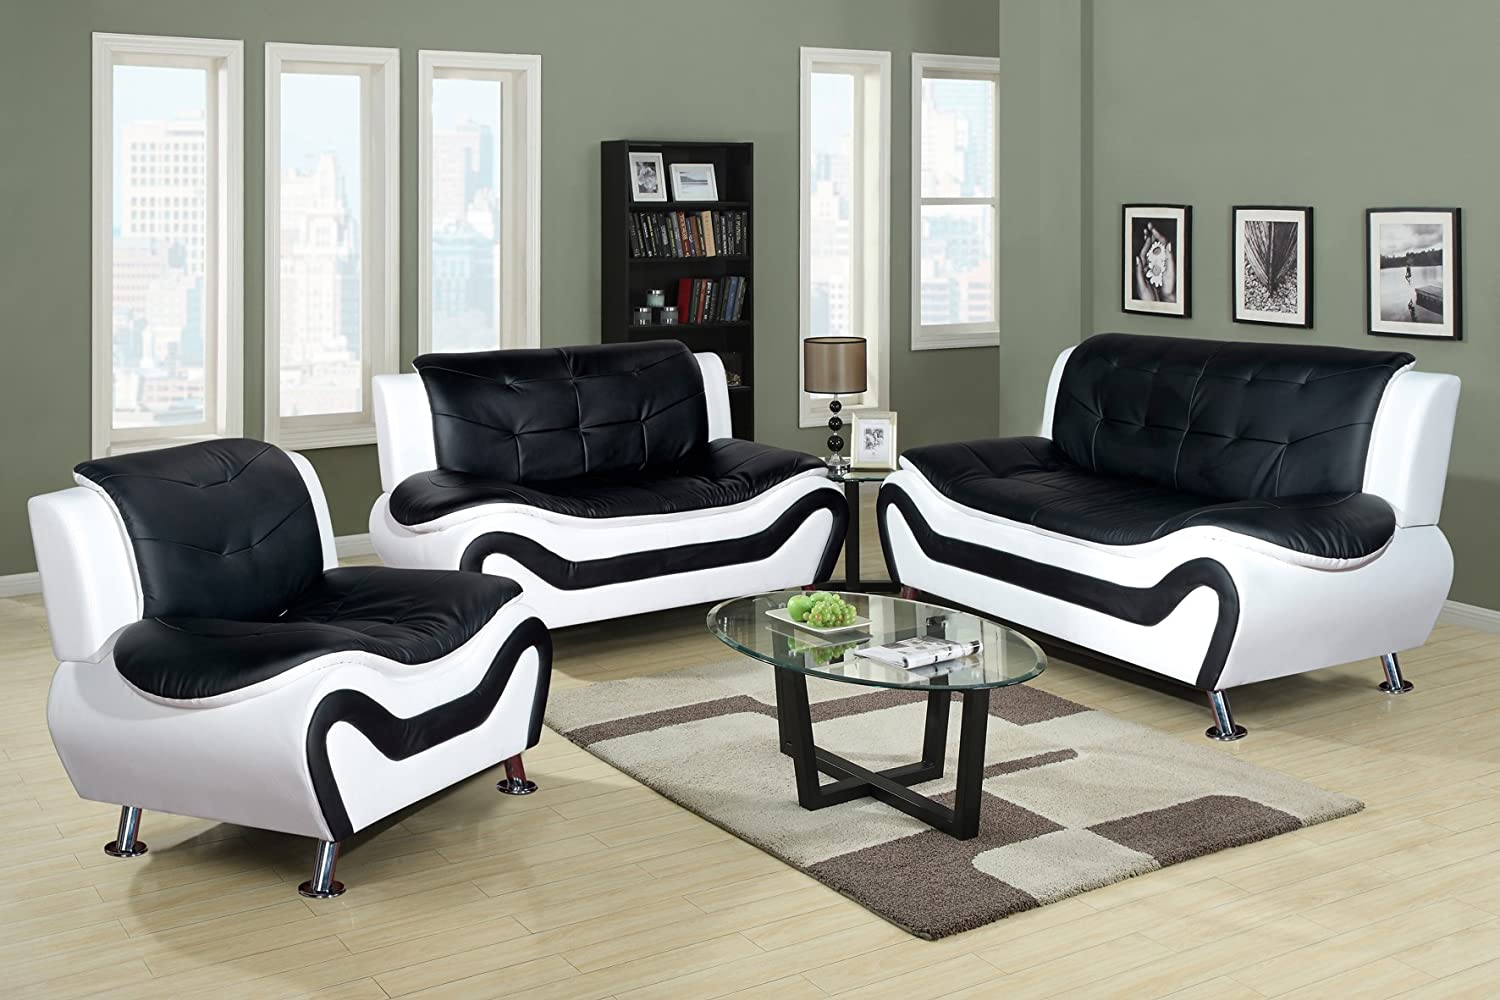 Wondrous Beverly Fine Furniture 3 Piece Aldo Modern Sofa Set Black White Machost Co Dining Chair Design Ideas Machostcouk